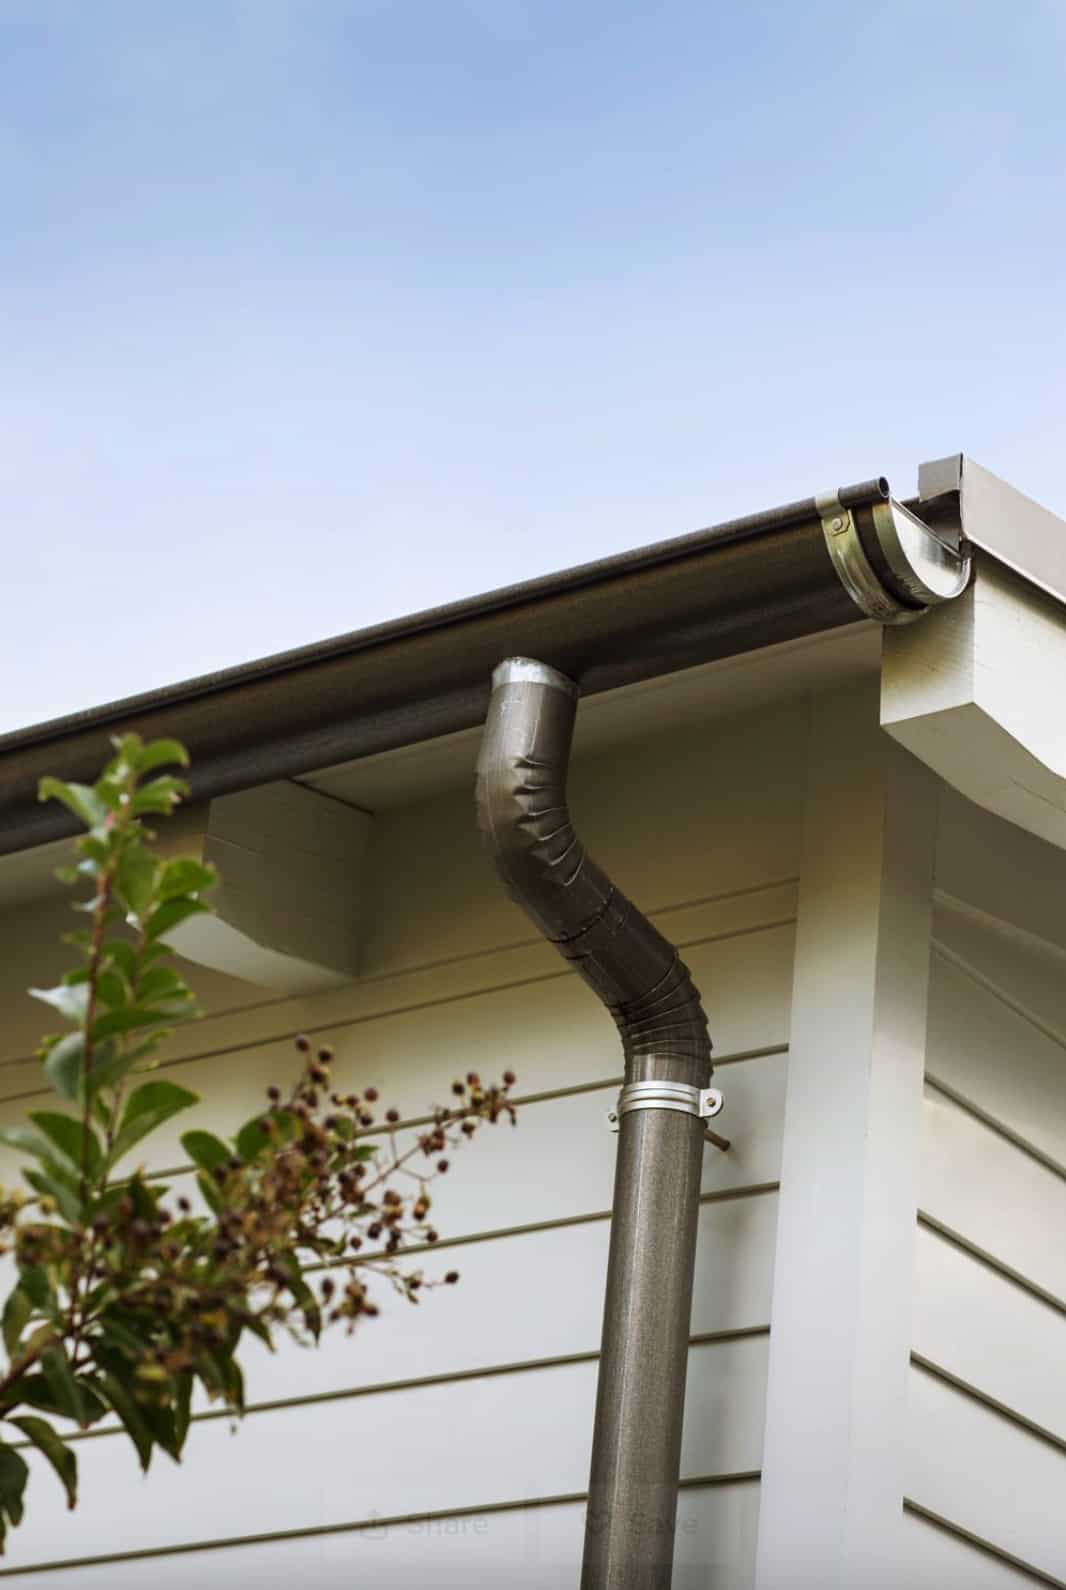 gutter-and-downspout-detail-on-traditional-house-exterior